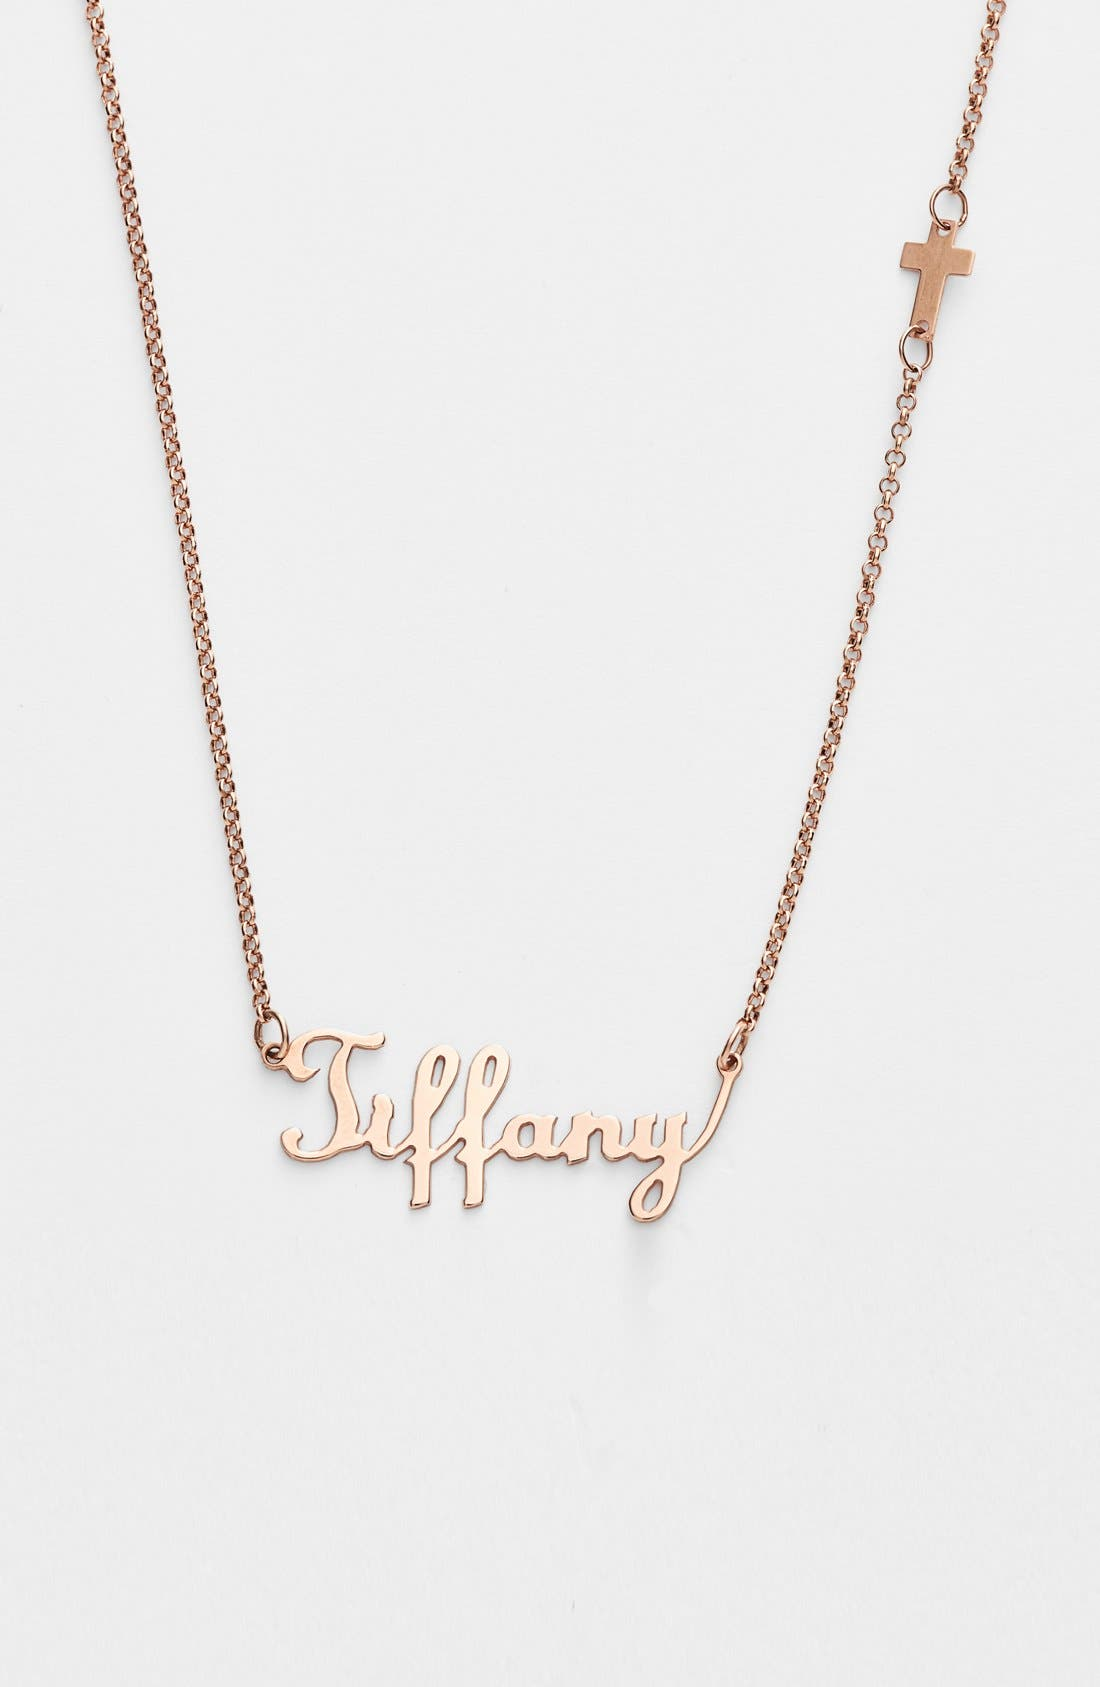 Personalized Script Name with Cross Necklace,                         Main,                         color, Rose Gold